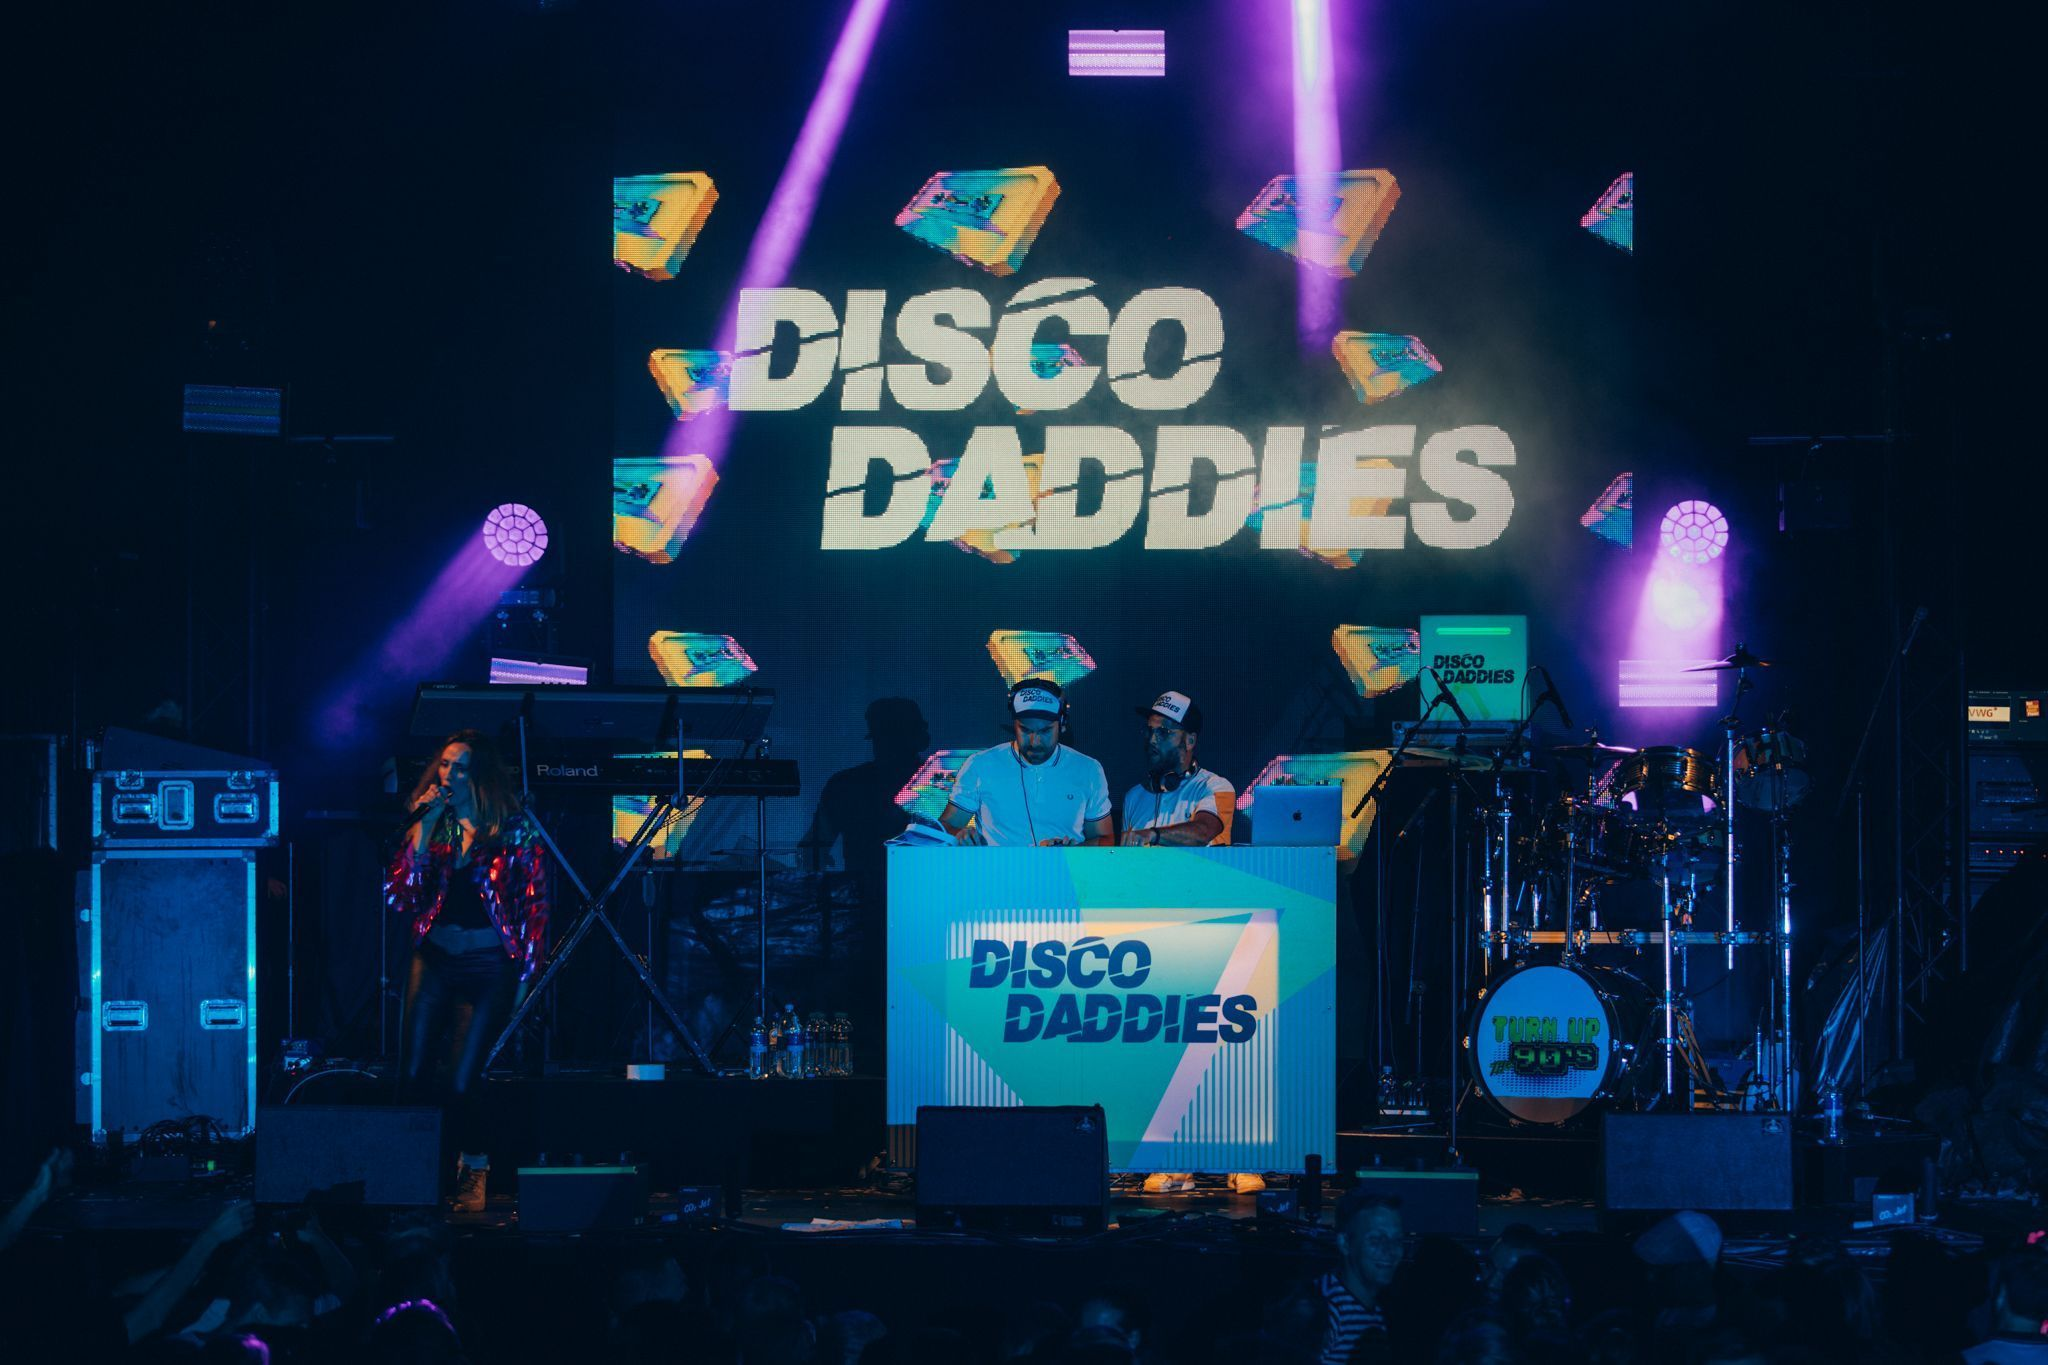 DISCO DADDIES